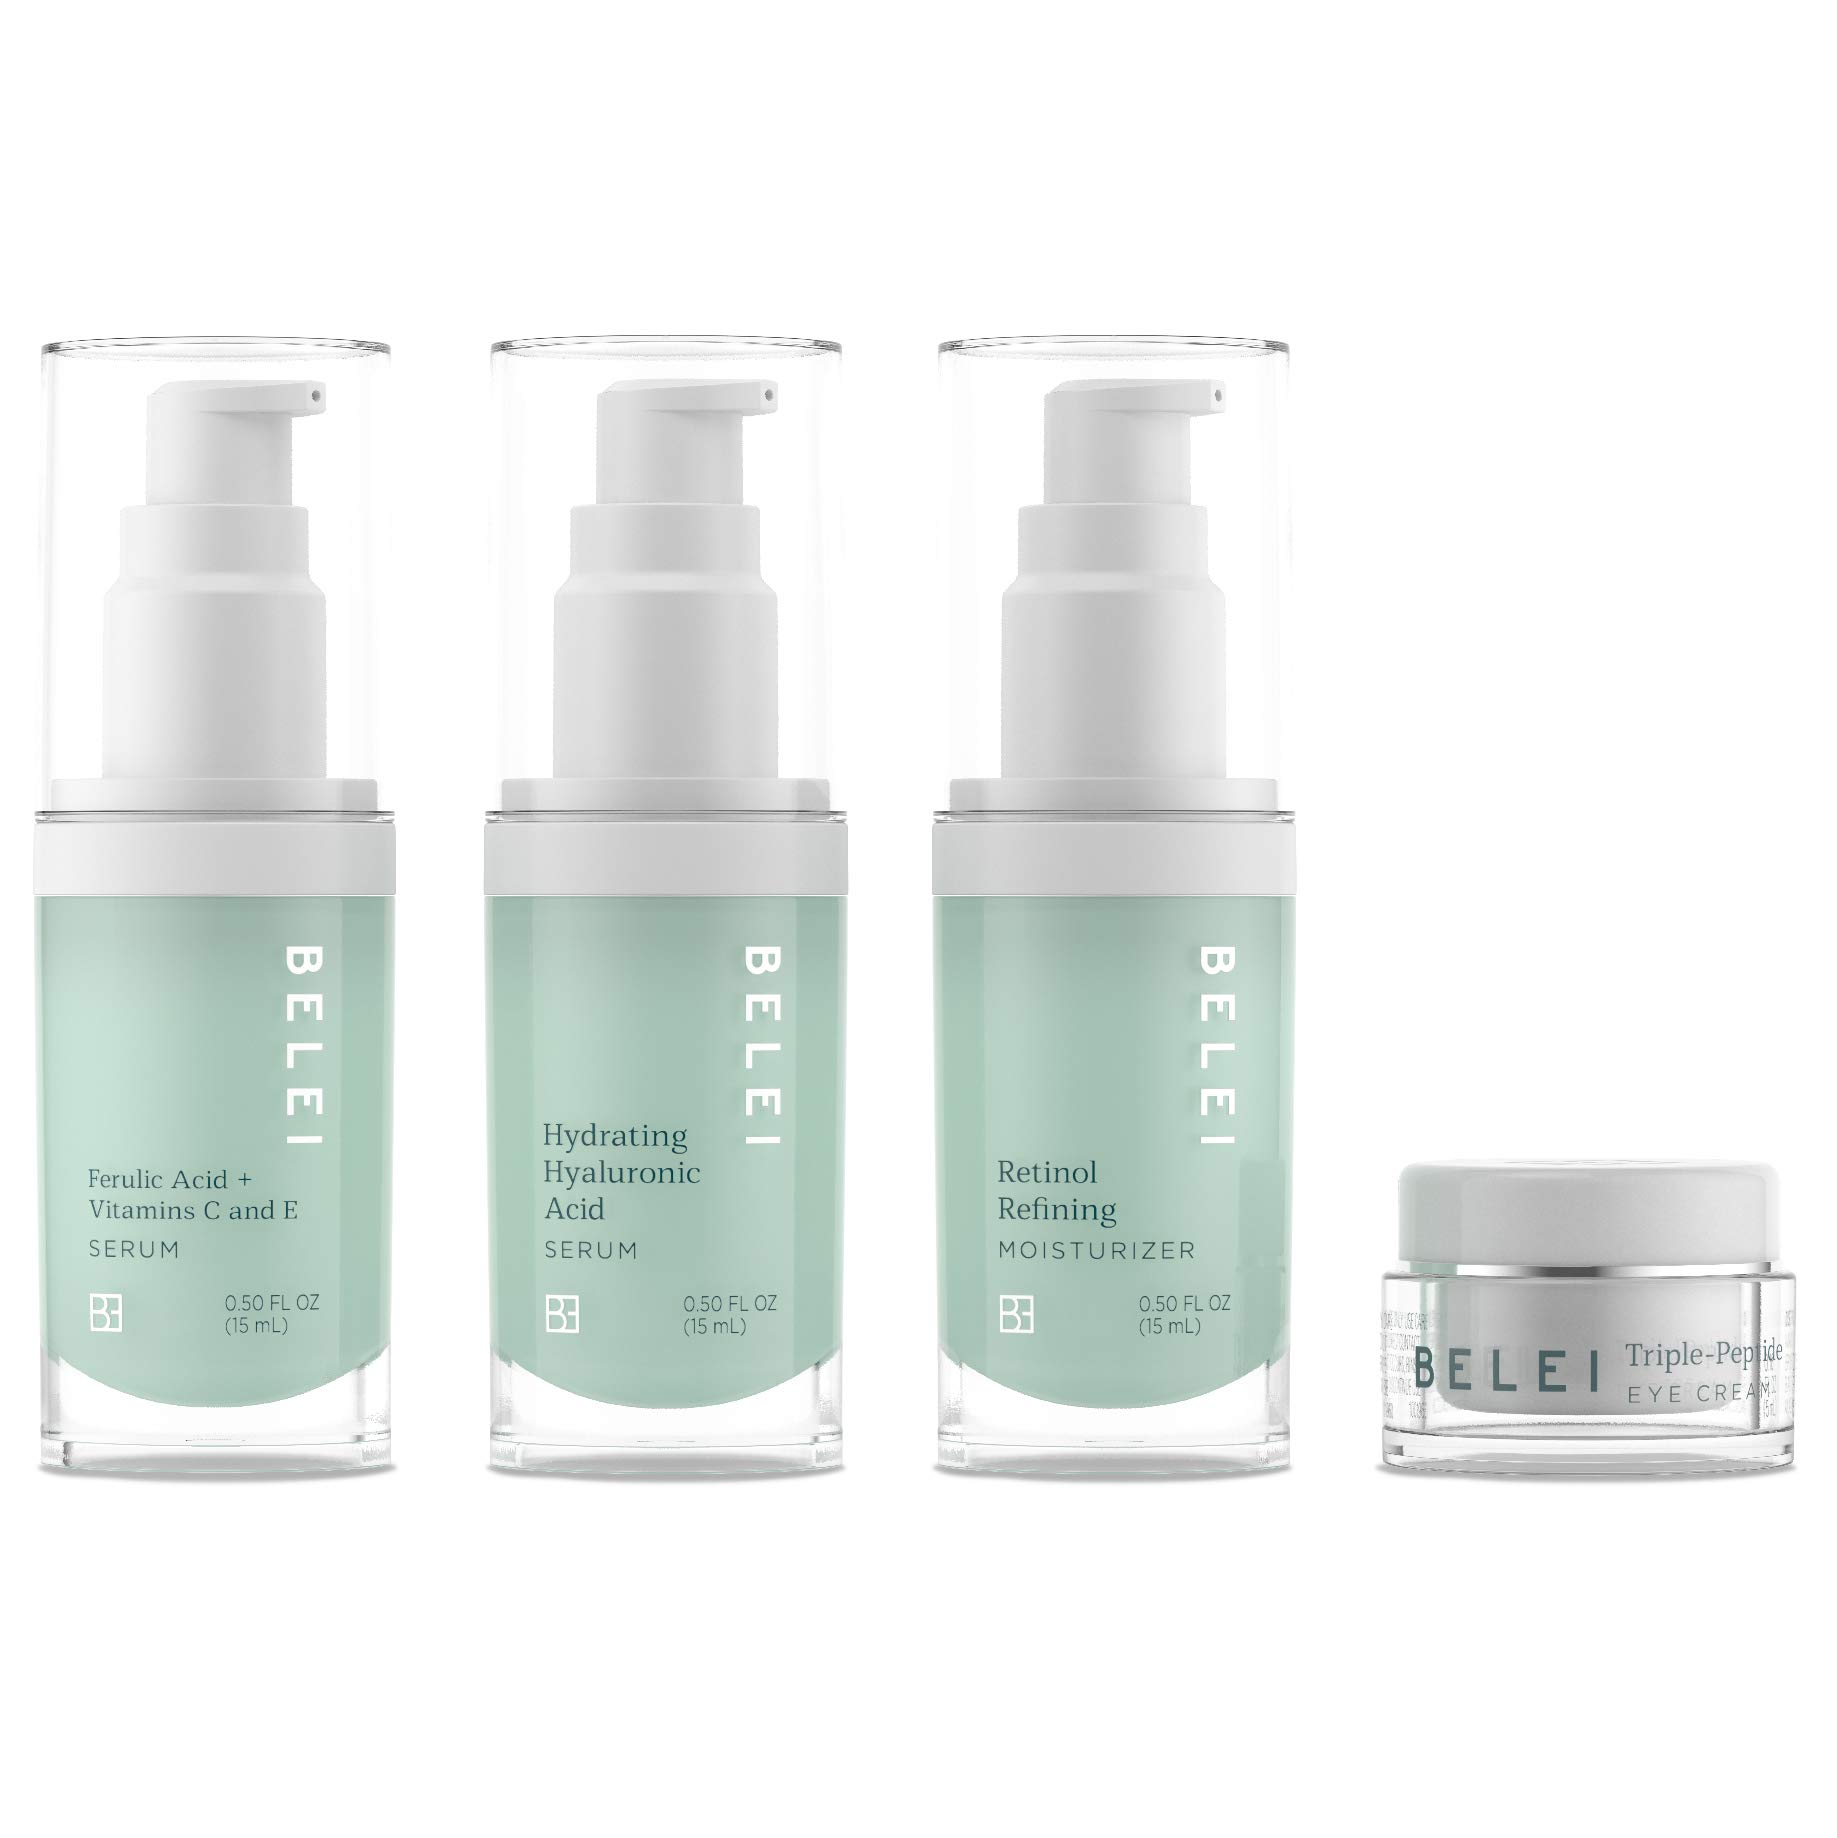 Belei Beauty Solutions Skin Care Set, All Skin Types ($44.90 Value)